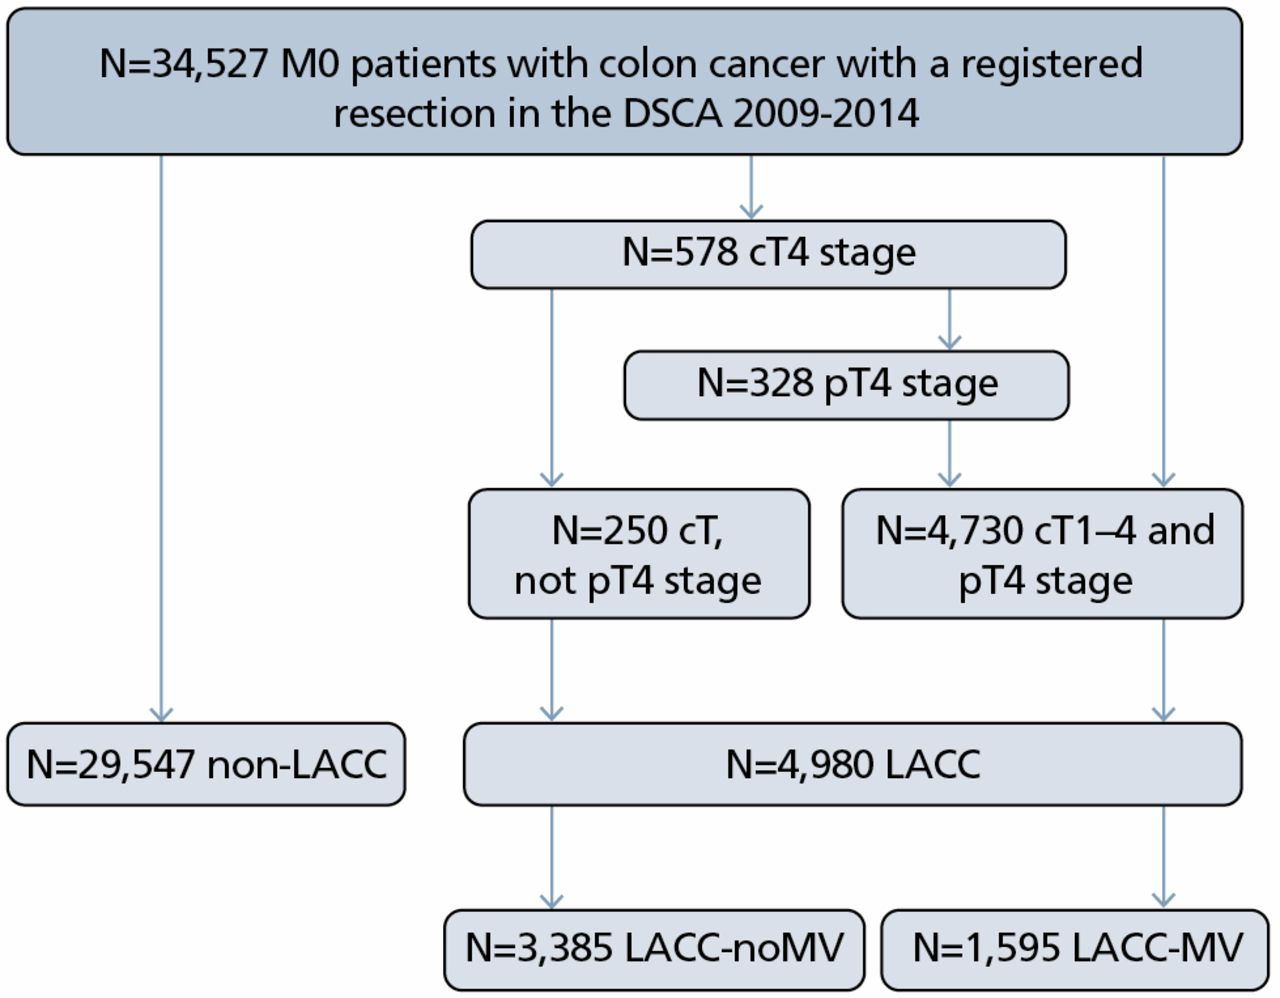 Locally Advanced Colon Cancer Evaluation Of Current Clinical Practice And Treatment Outcomes At The Population Level In Journal Of The National Comprehensive Cancer Network Volume 15 Issue 2 2017